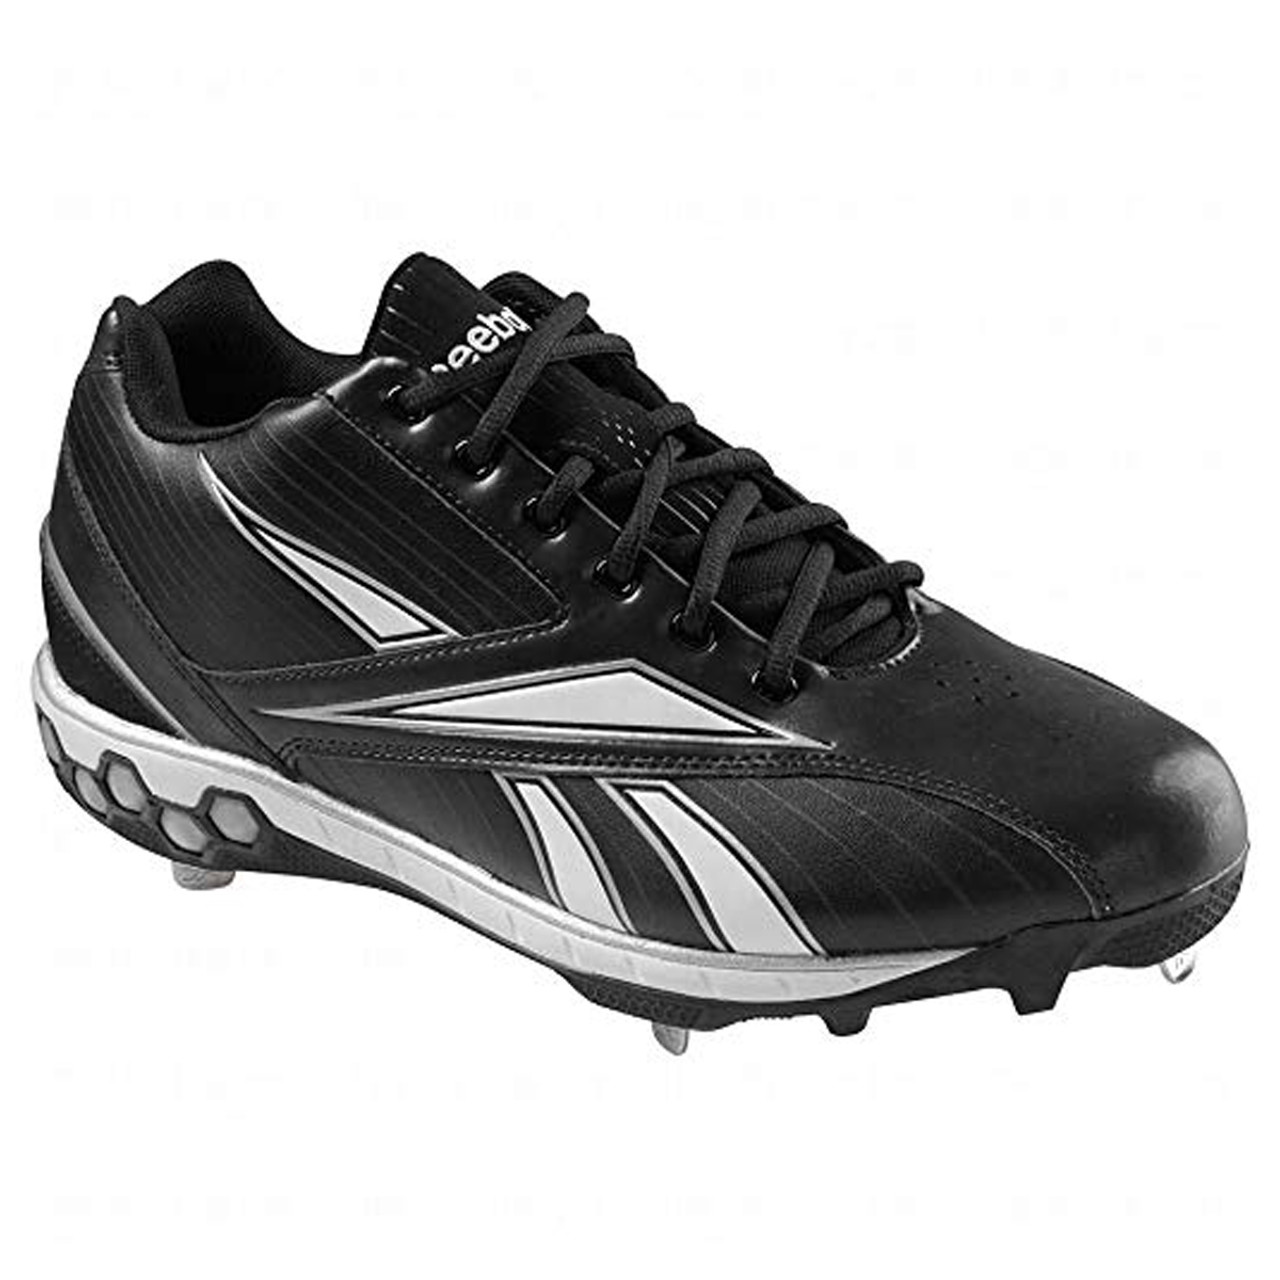 0275eaa1c864 ... Reebok High & Tight Mid Hex Metal Men's Baseball Cleats. For Less